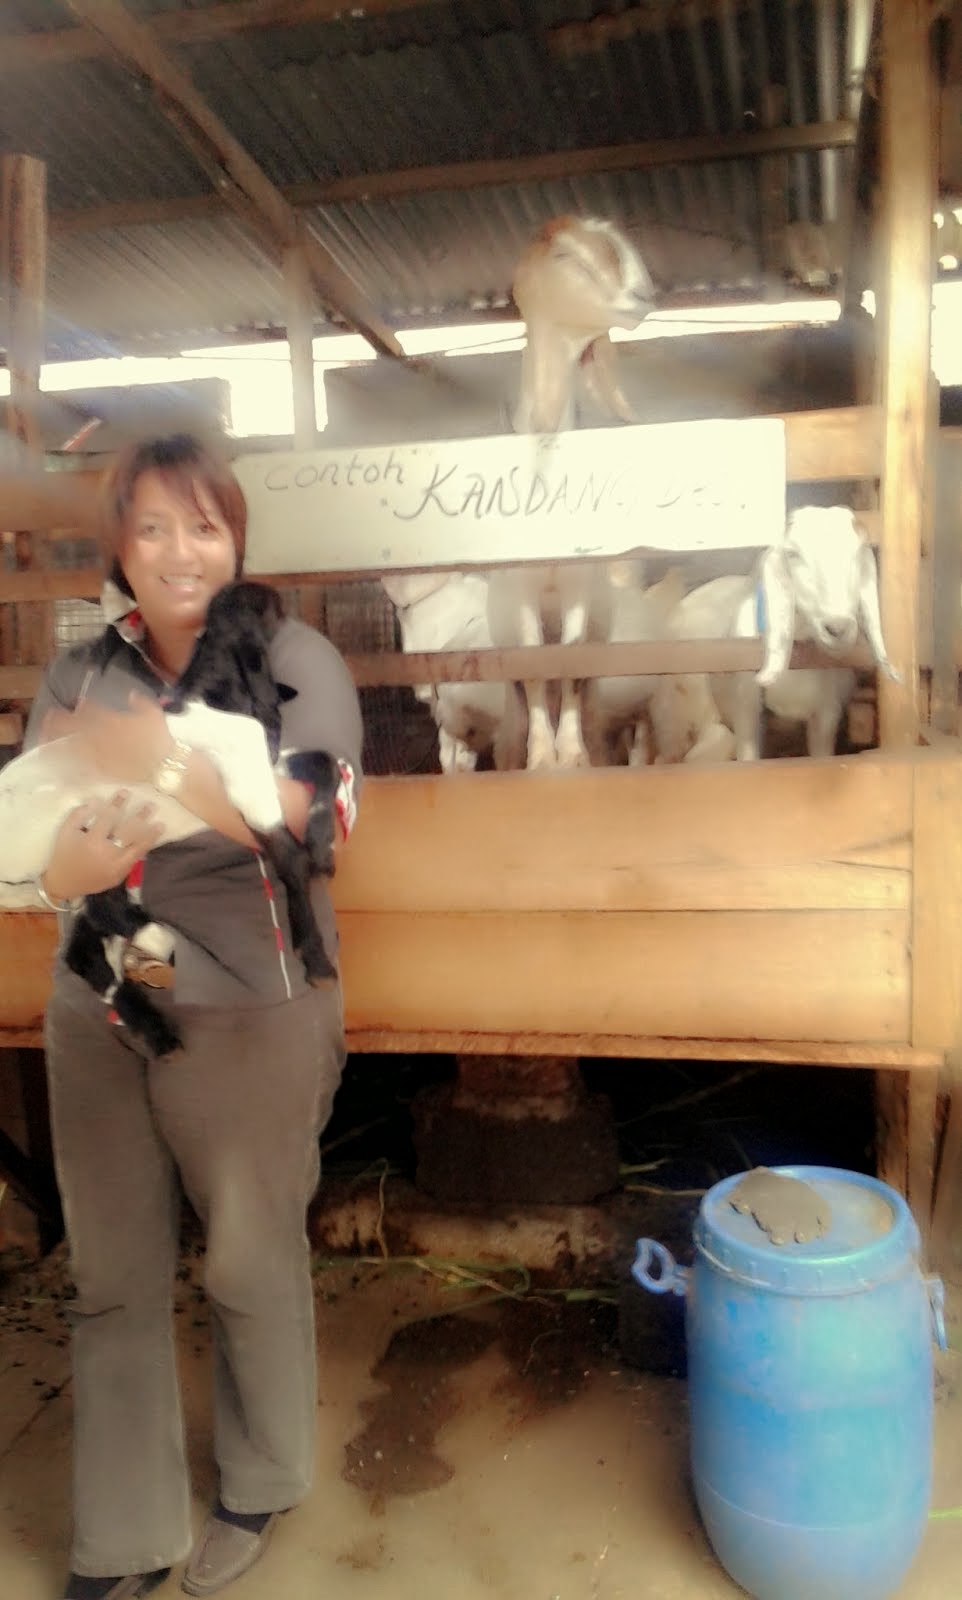 Survei Kambing untuk Persiapan Demplot tgl 20 Februari 2014